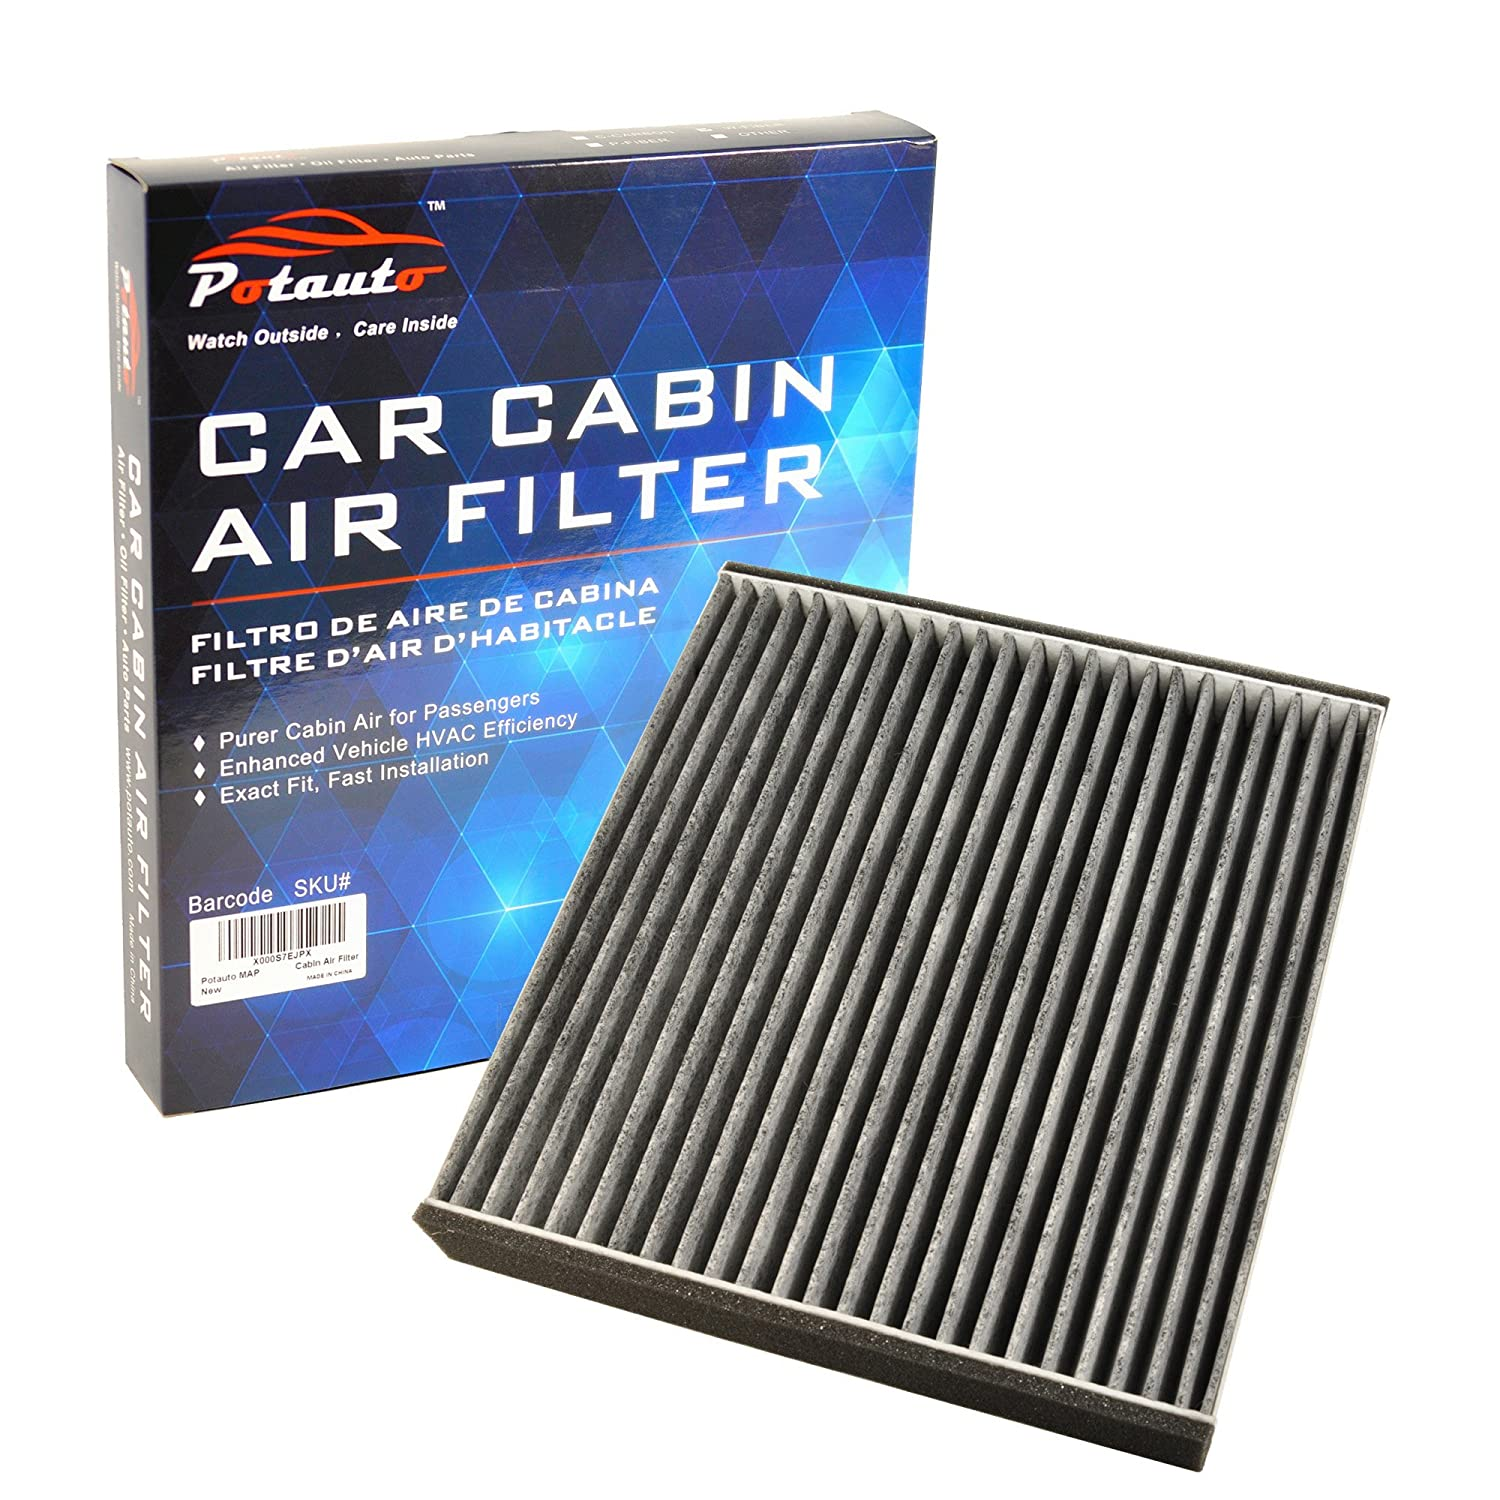 Amazon.com: POTAUTO MAP 1016C Heavy Activated Carbon Car Cabin Air Filter  Replacement compatible with LEXUS, GS300, GS430, LS430, SC430 (Upgraded  with ...